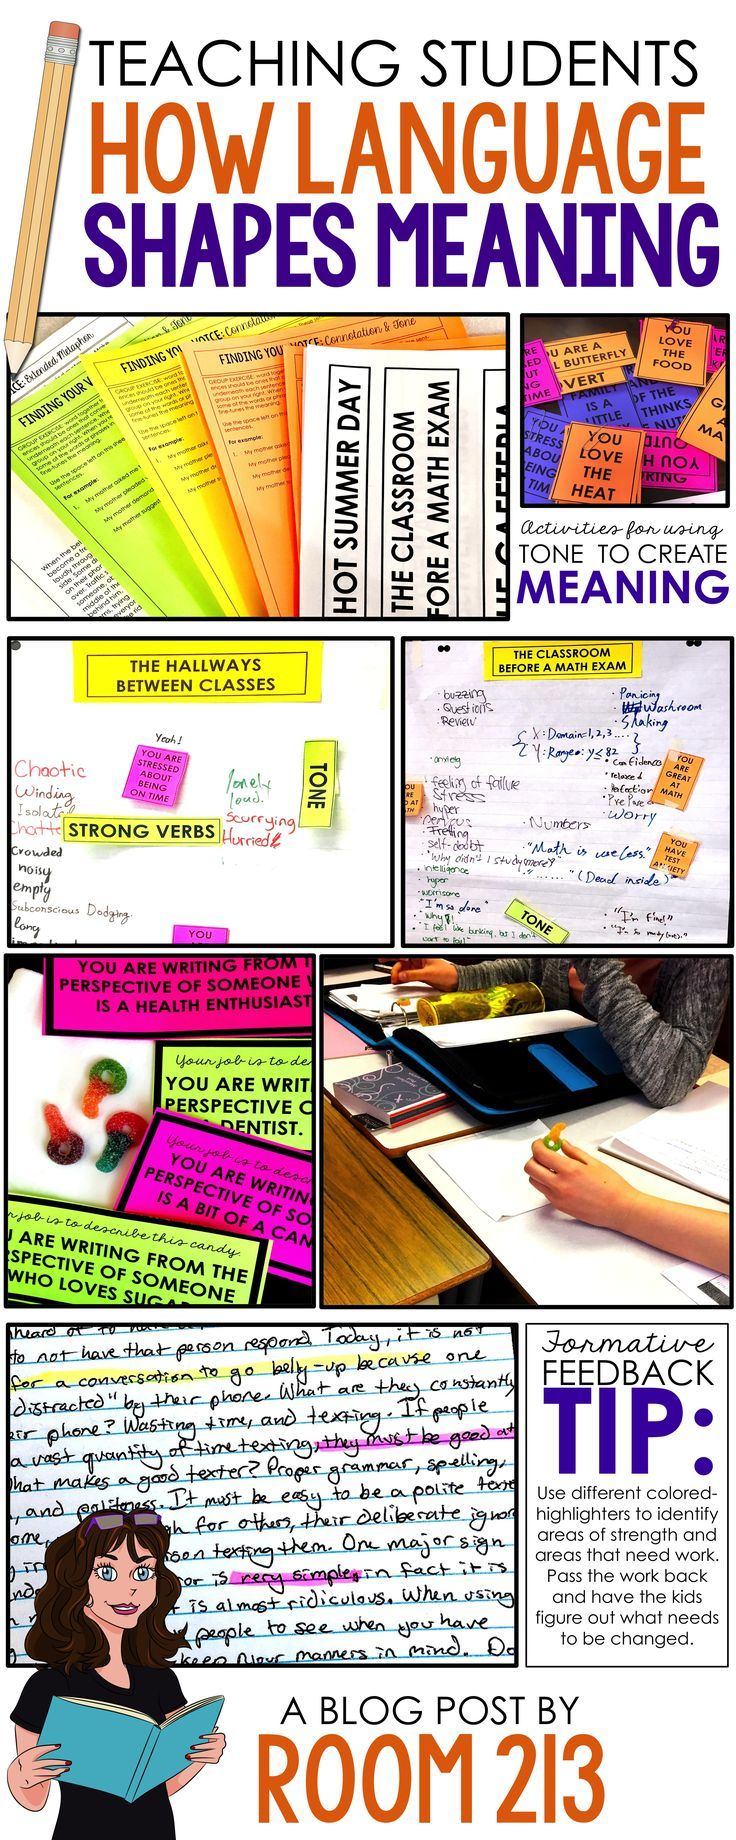 Writing Lessons: teach your students how word choice affects meaning with these engaging and meaningful activities.